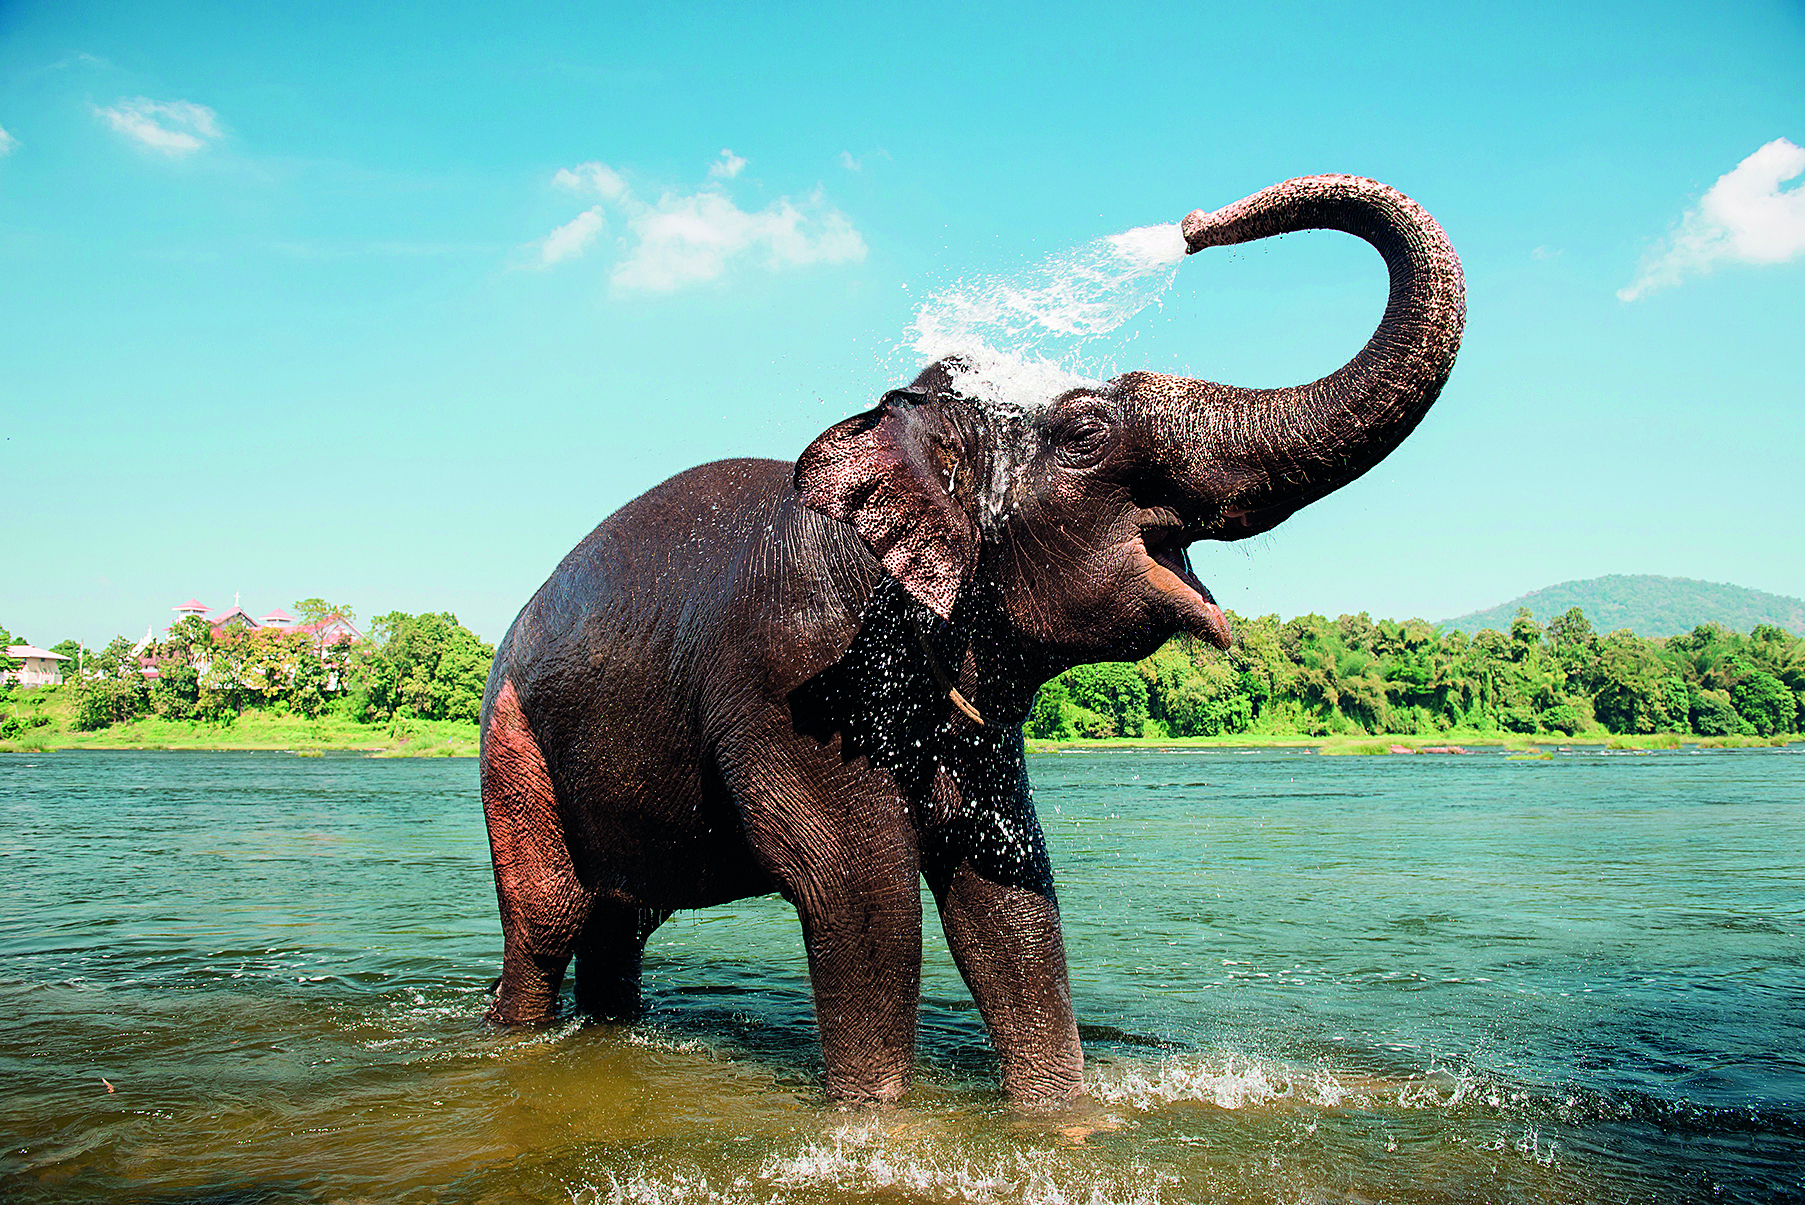 kerala water elephant splash